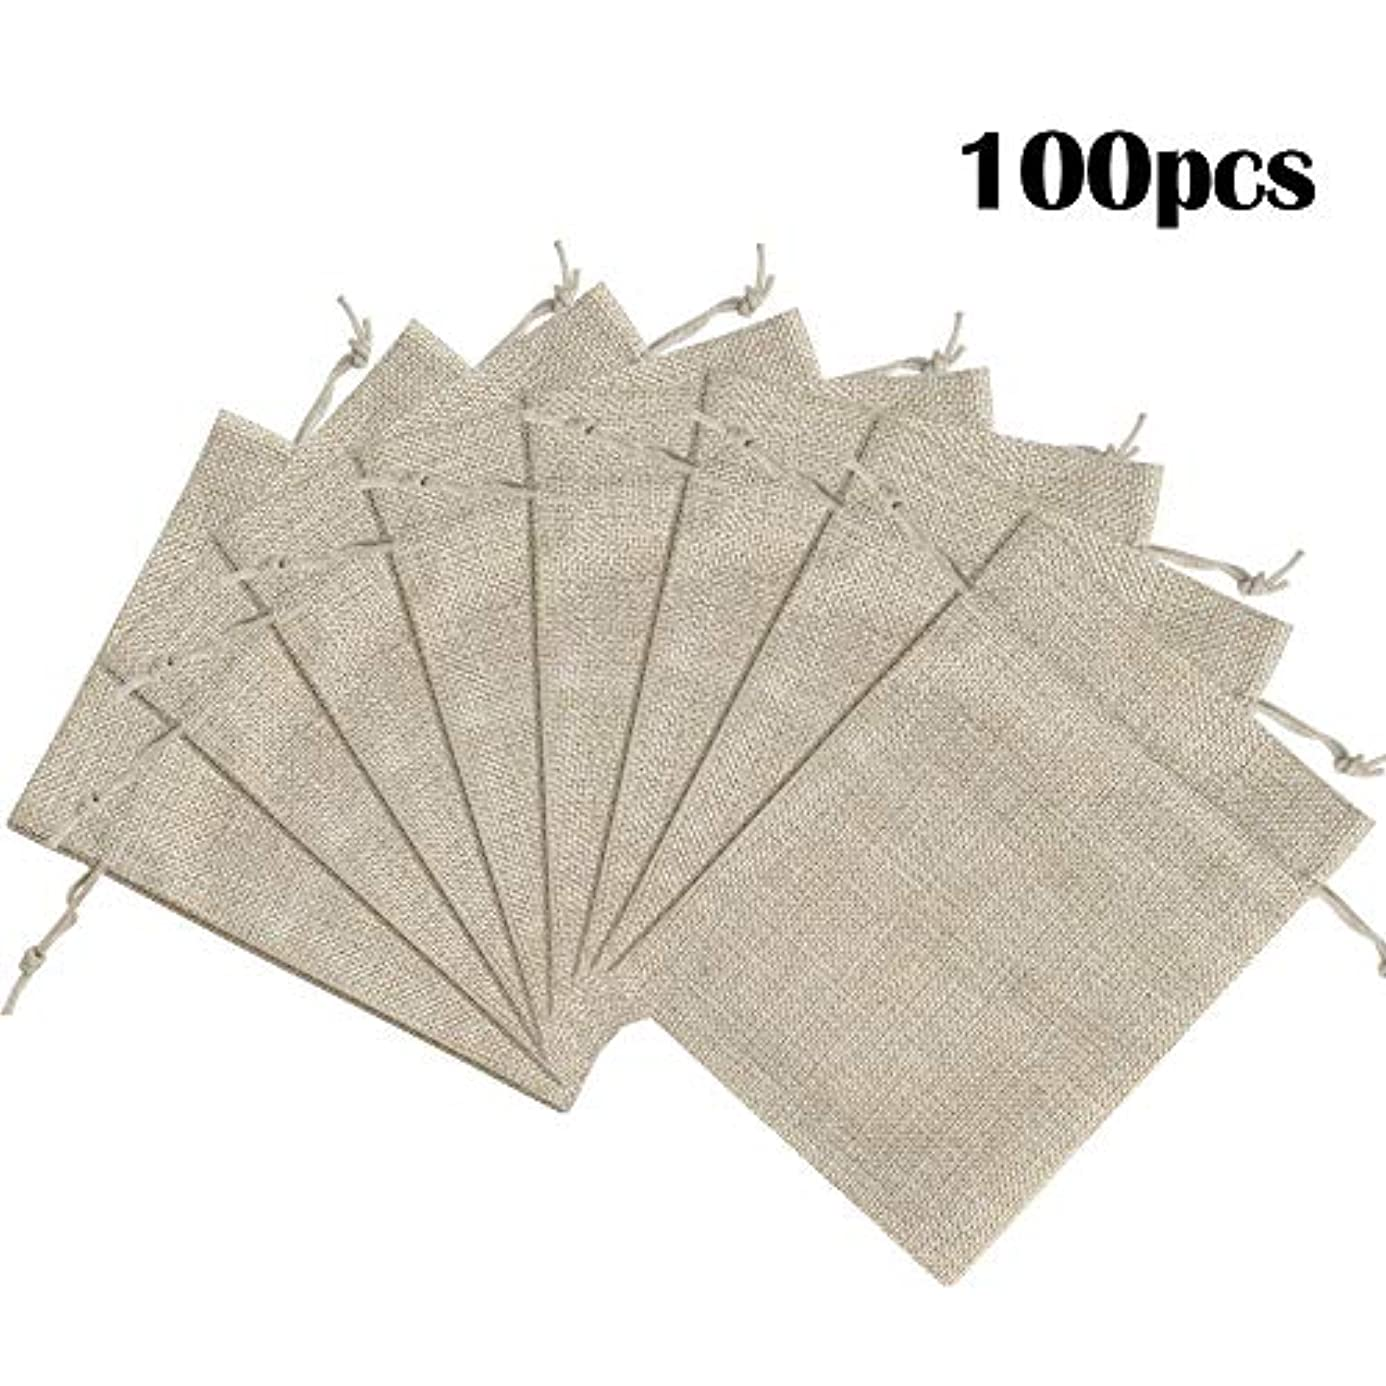 "Lucky Monet 25/50/100PCS Burlap Gift Bags Wedding Hessian Jute Bags Linen Jewelry Pouches with Drawstring for Birthday, Party, Wedding Favors, Present, Art and DIY Craft (100Pcs, Cream, 7"" x 9"") dpl4422351"